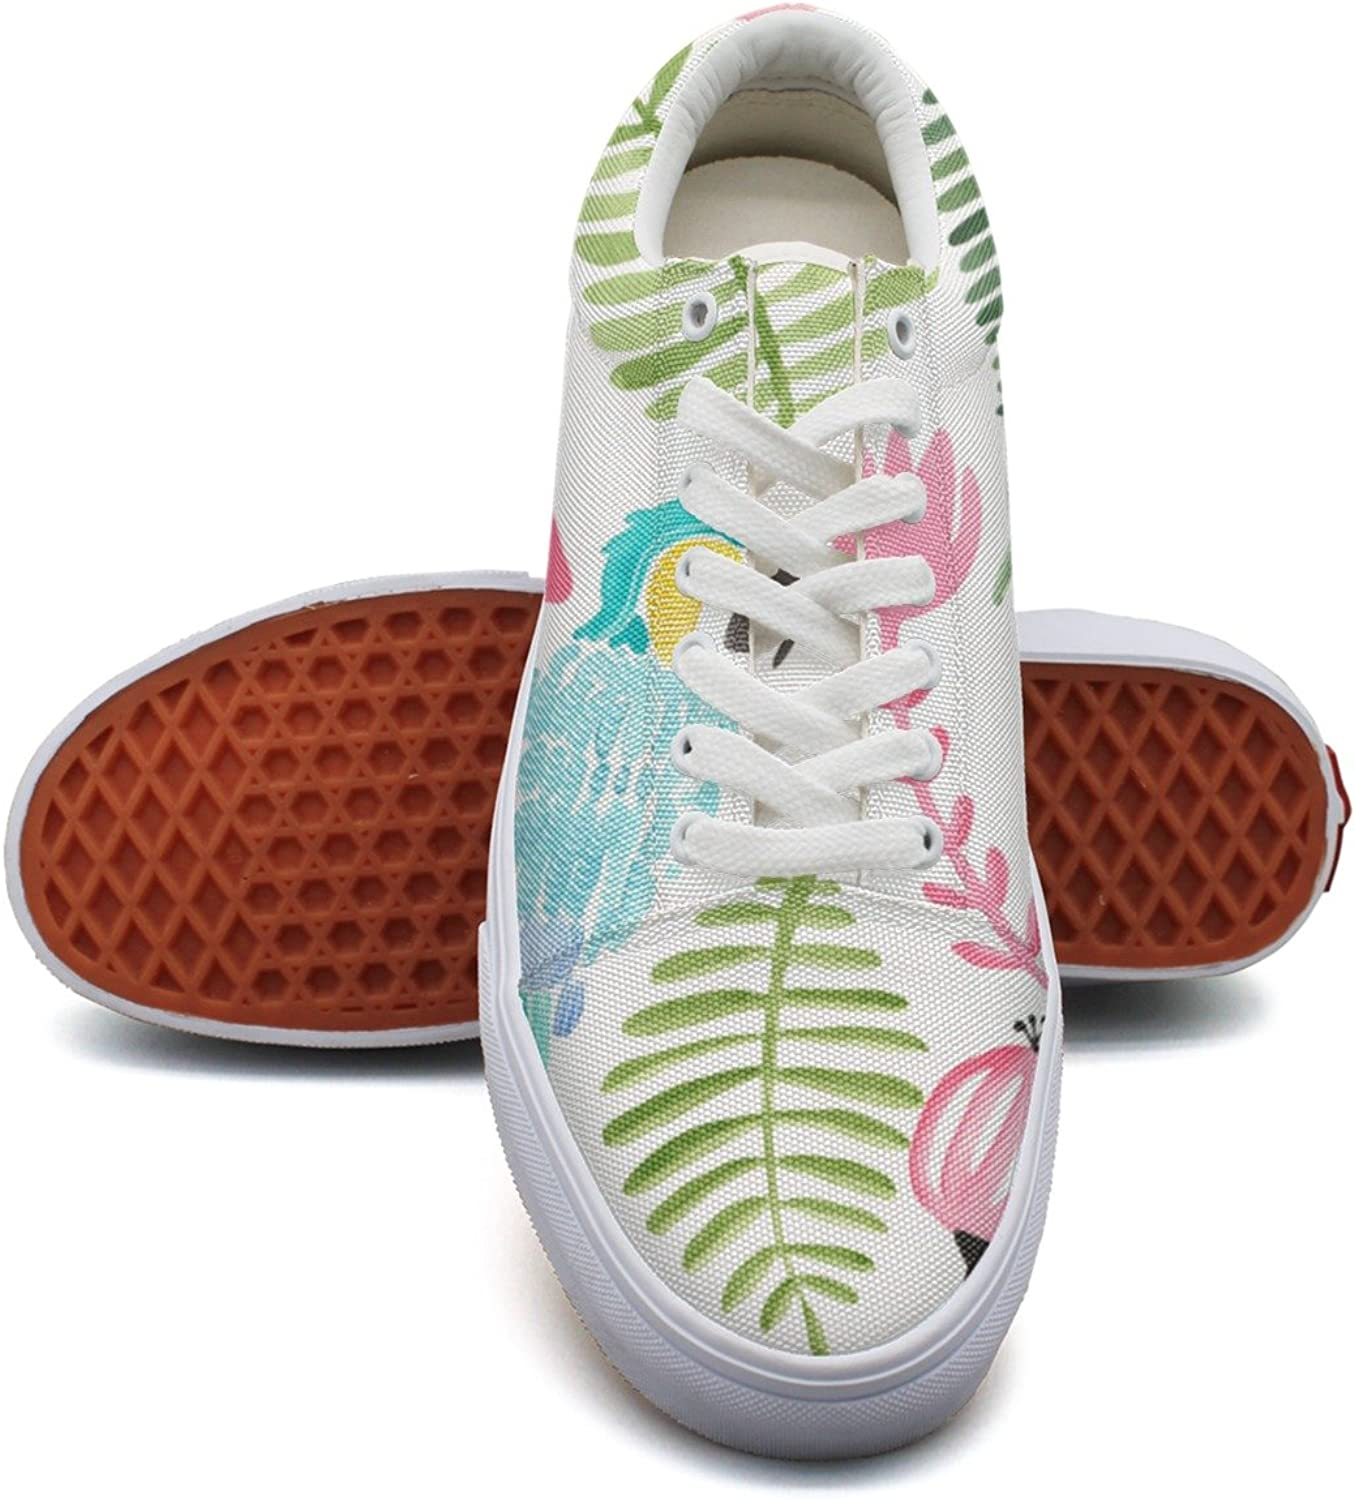 Feenfling Tropical Jungle Parreds Womens Fashion Canvas Deck shoes Low Top Best Sneakers shoes for Women's